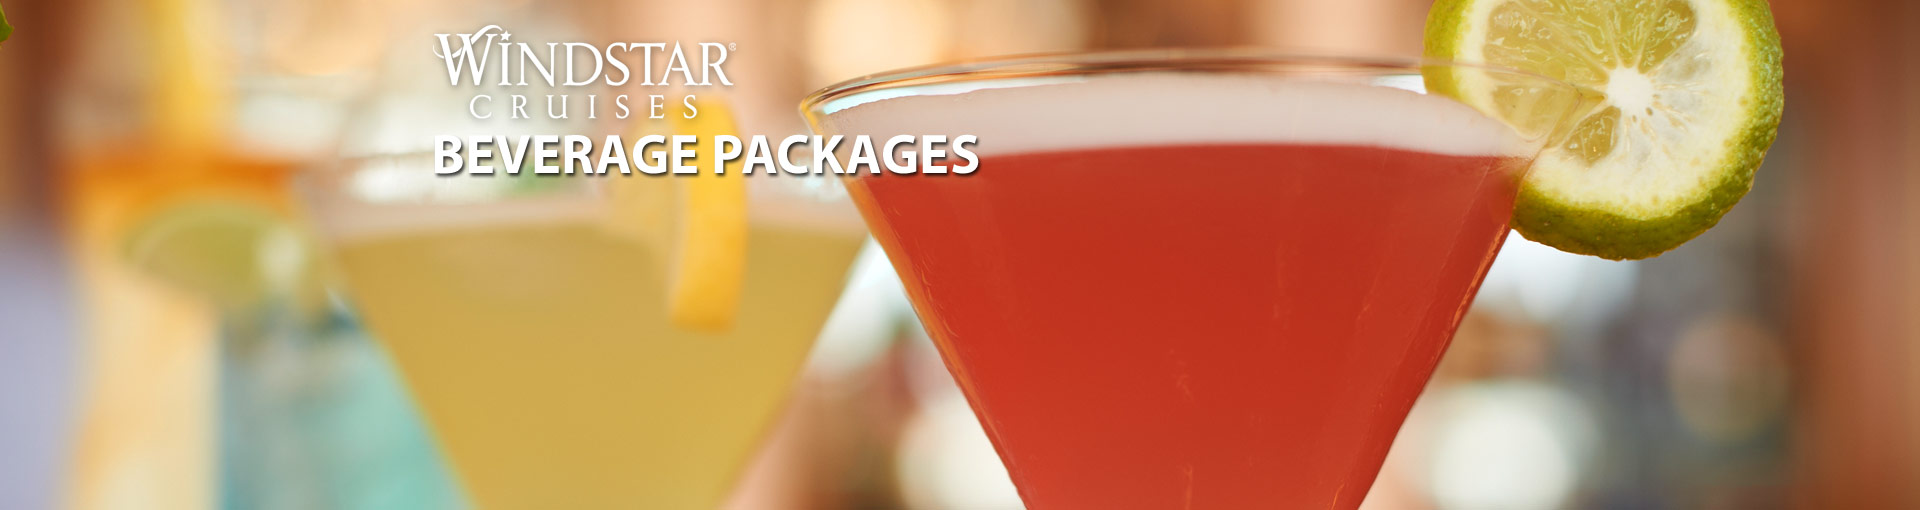 Windstar Cruises Drink Packages